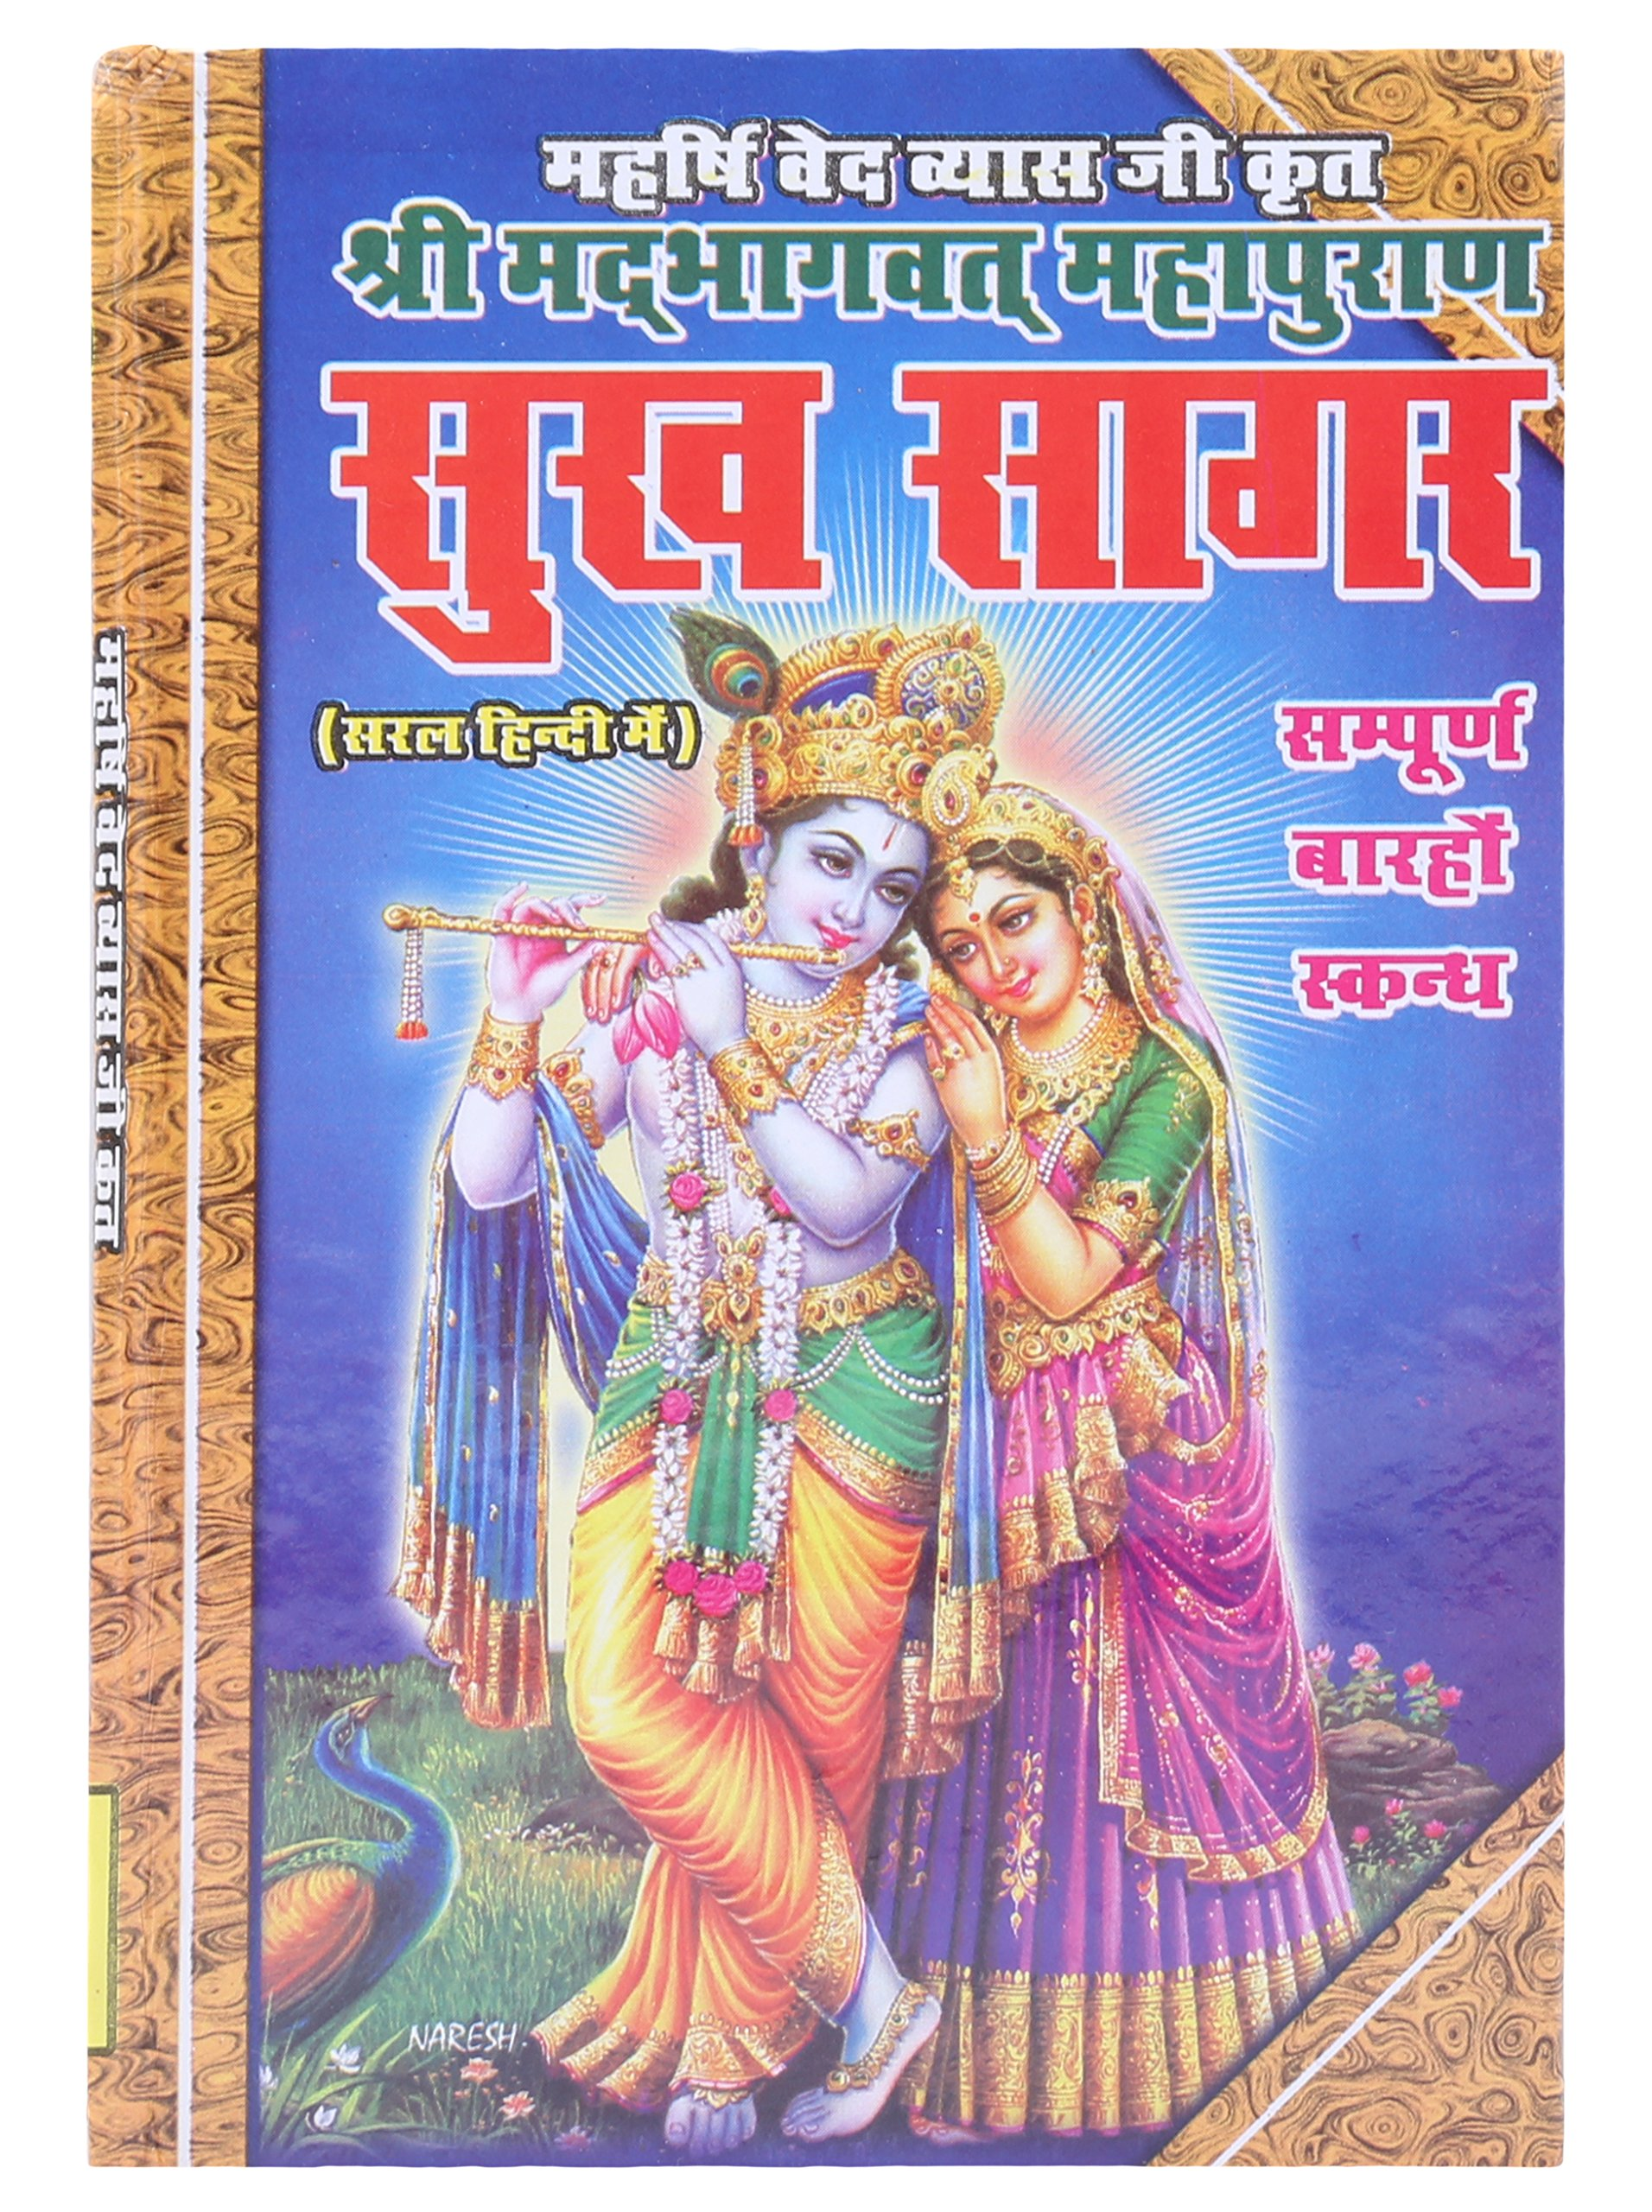 Buy Shri MadBhagwat Mahapuran - Sukh Sagar (Hindi) Small